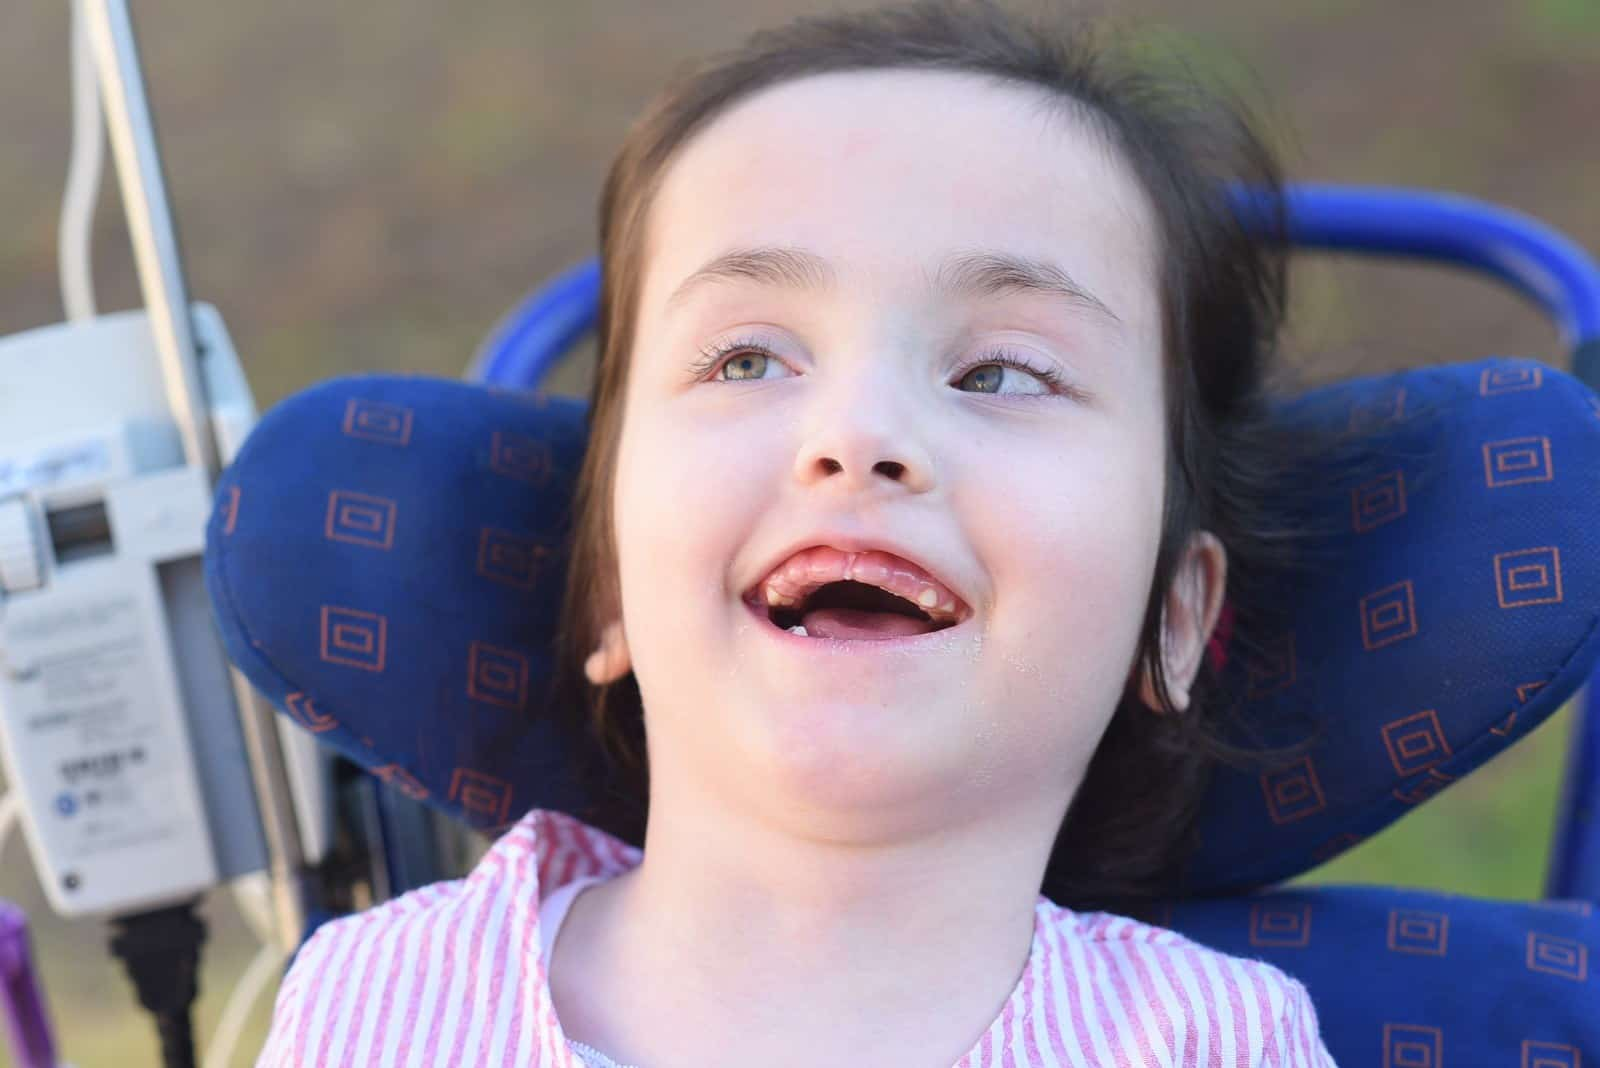 5 To Thrive: Enhance Care & Advance Inclusion